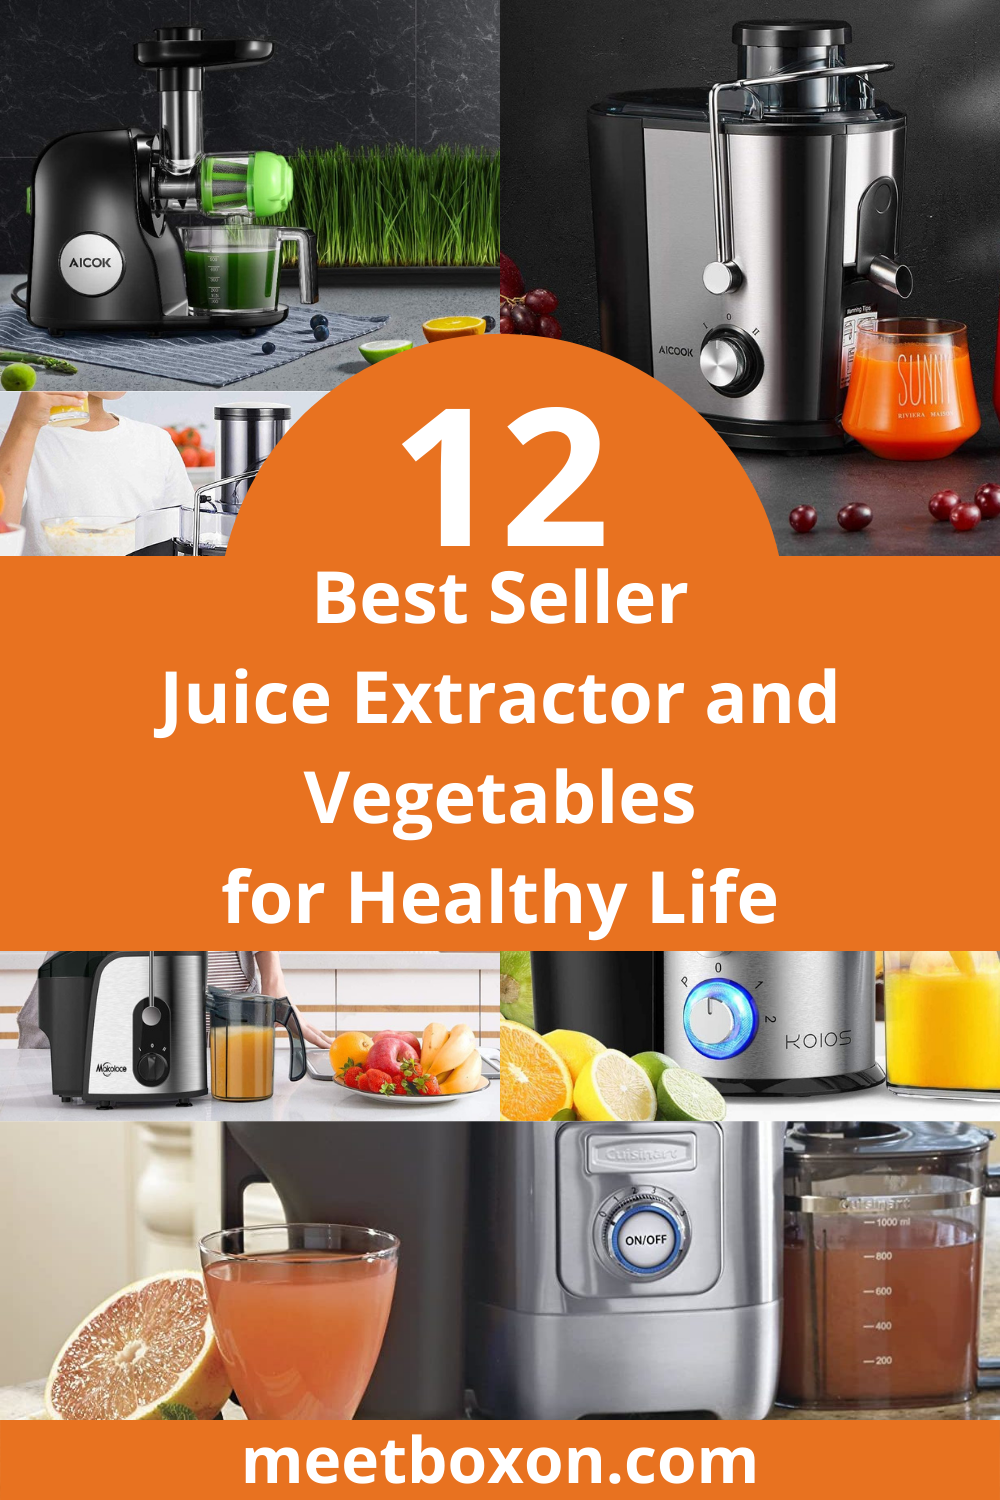 12 Best Seller Juice Extractor and Vegetables for Healthy Life